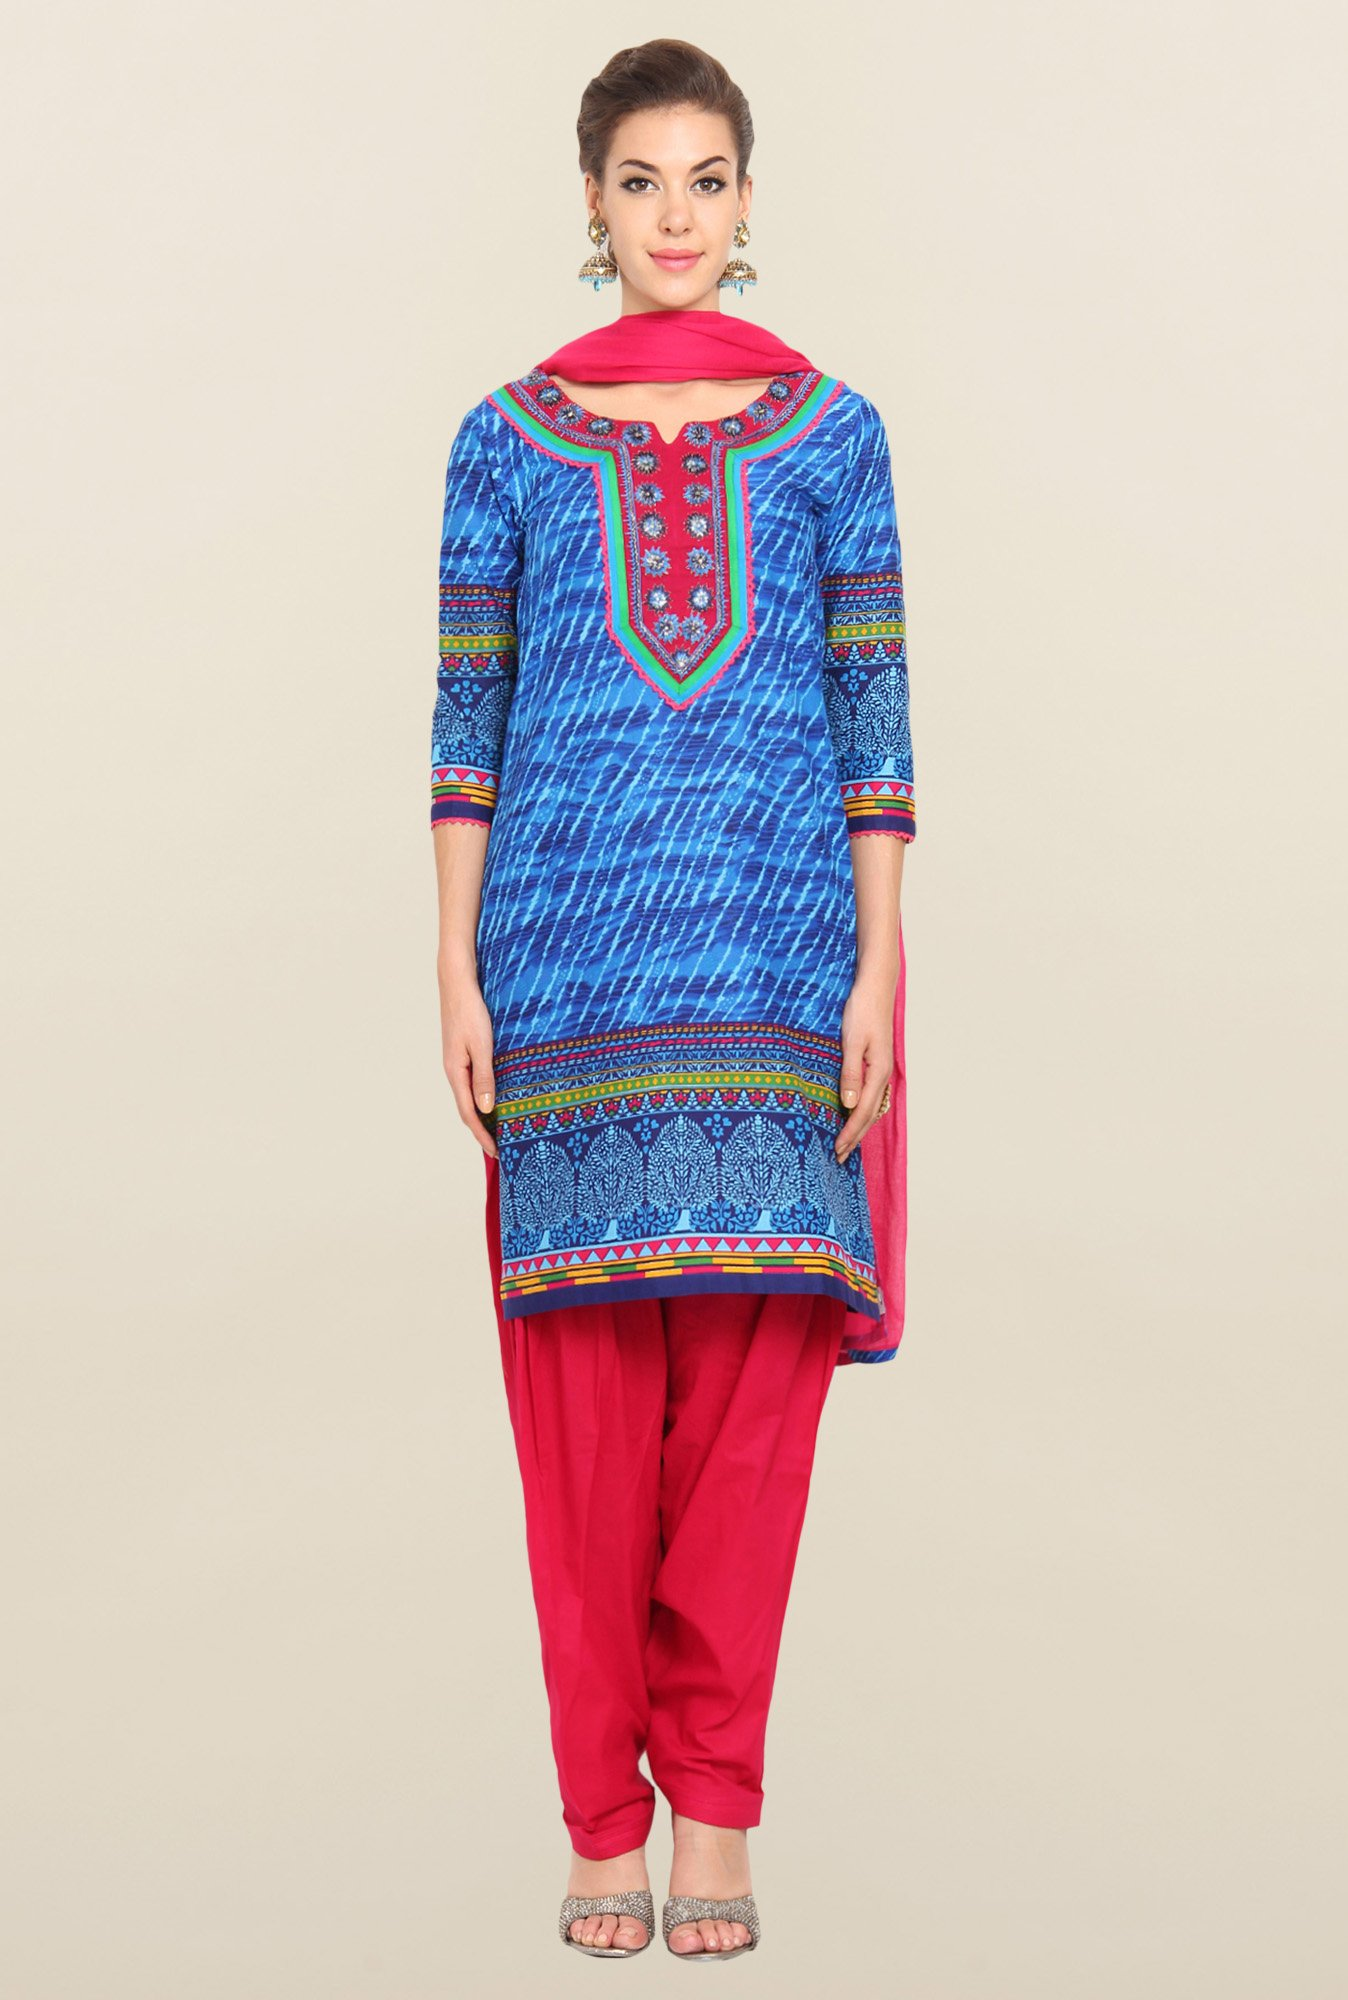 Soch Blue & Pink Leheriya Cotton Churidar Suit Set